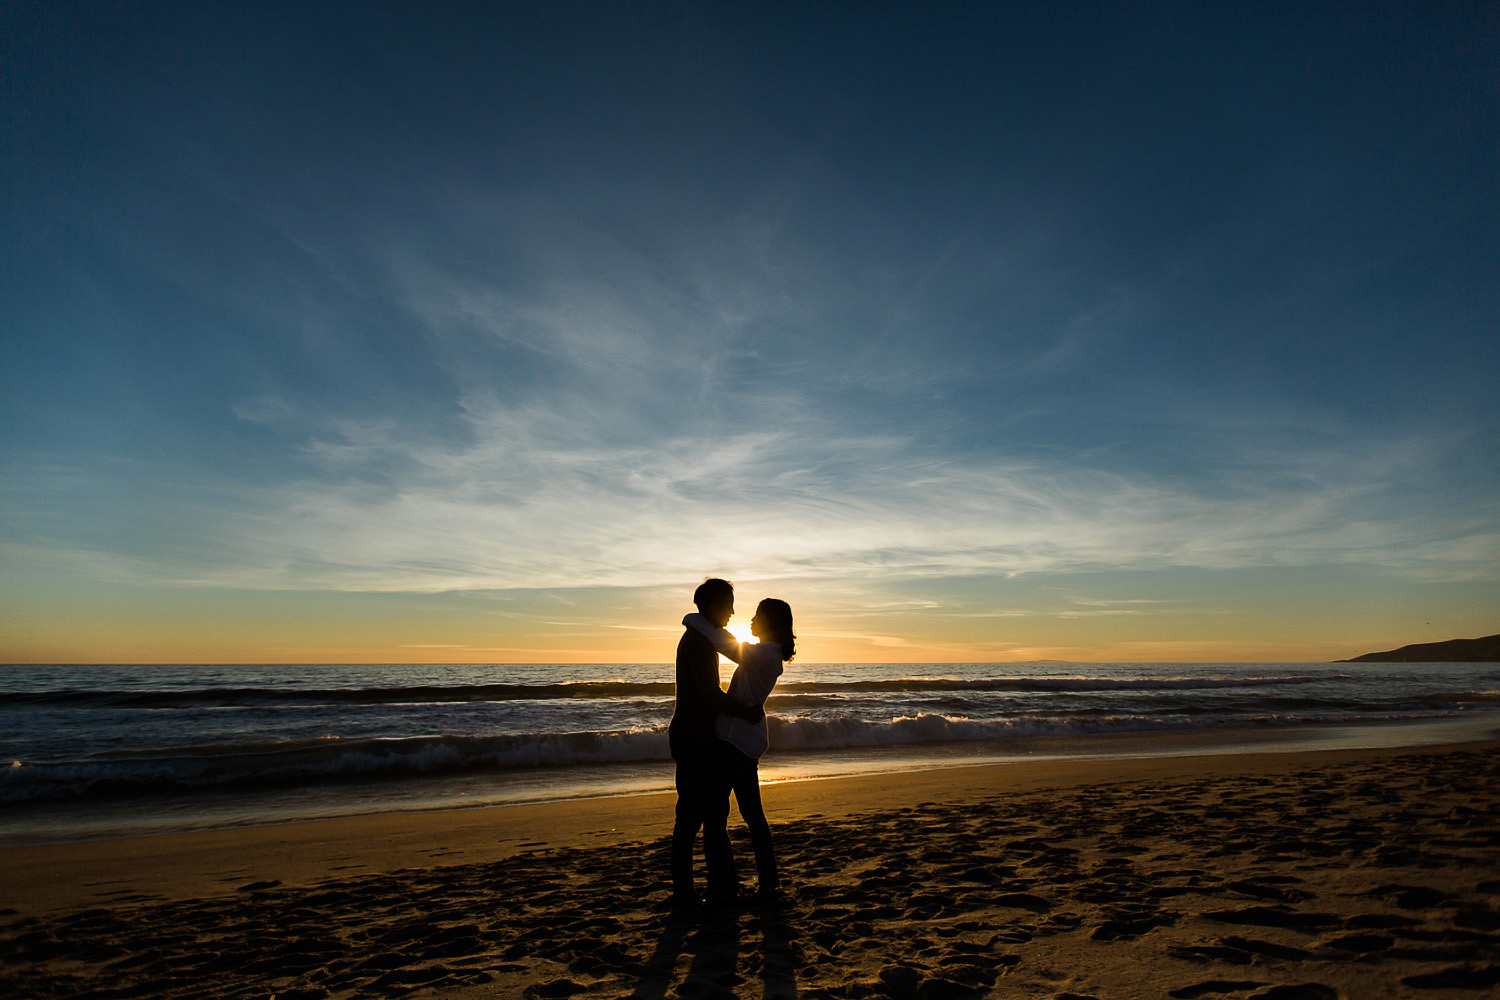 Hailey_James_Engagement_Session_Malibu_Web-0082.jpg